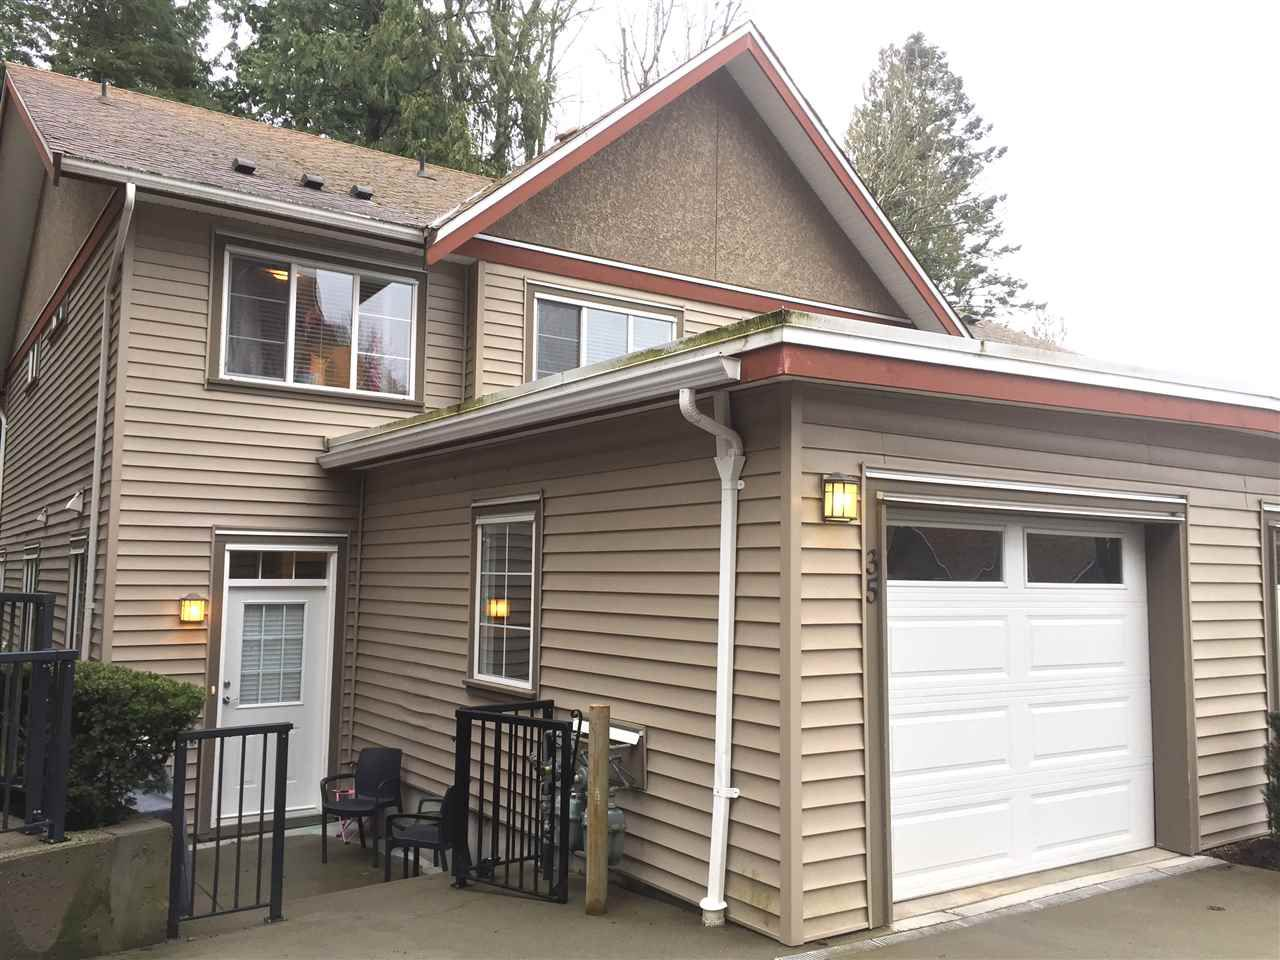 """Main Photo: 35 35626 MCKEE Road in Abbotsford: Abbotsford East Townhouse for sale in """"Ledgeview  Villas"""" : MLS®# R2147131"""